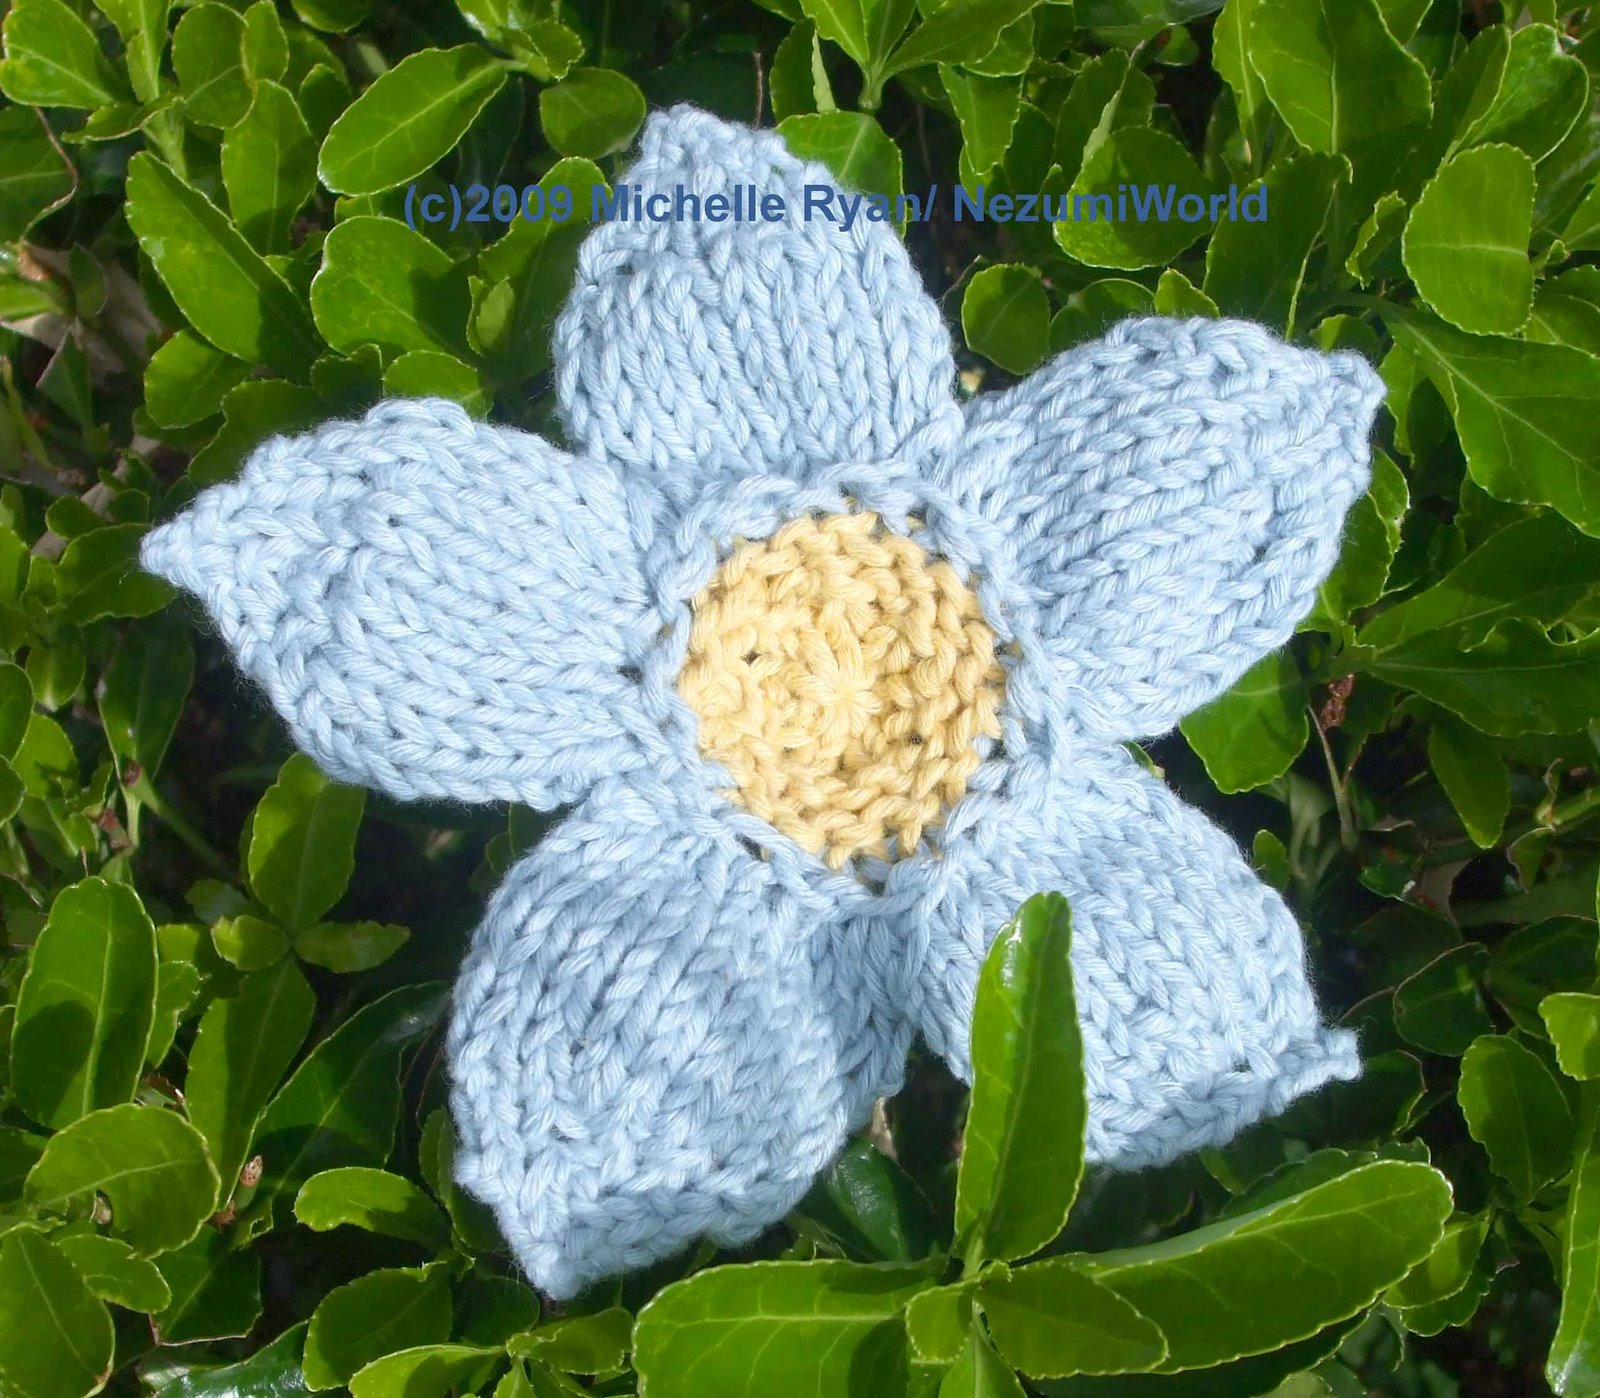 The Handmade Flower: Knitted Flowers